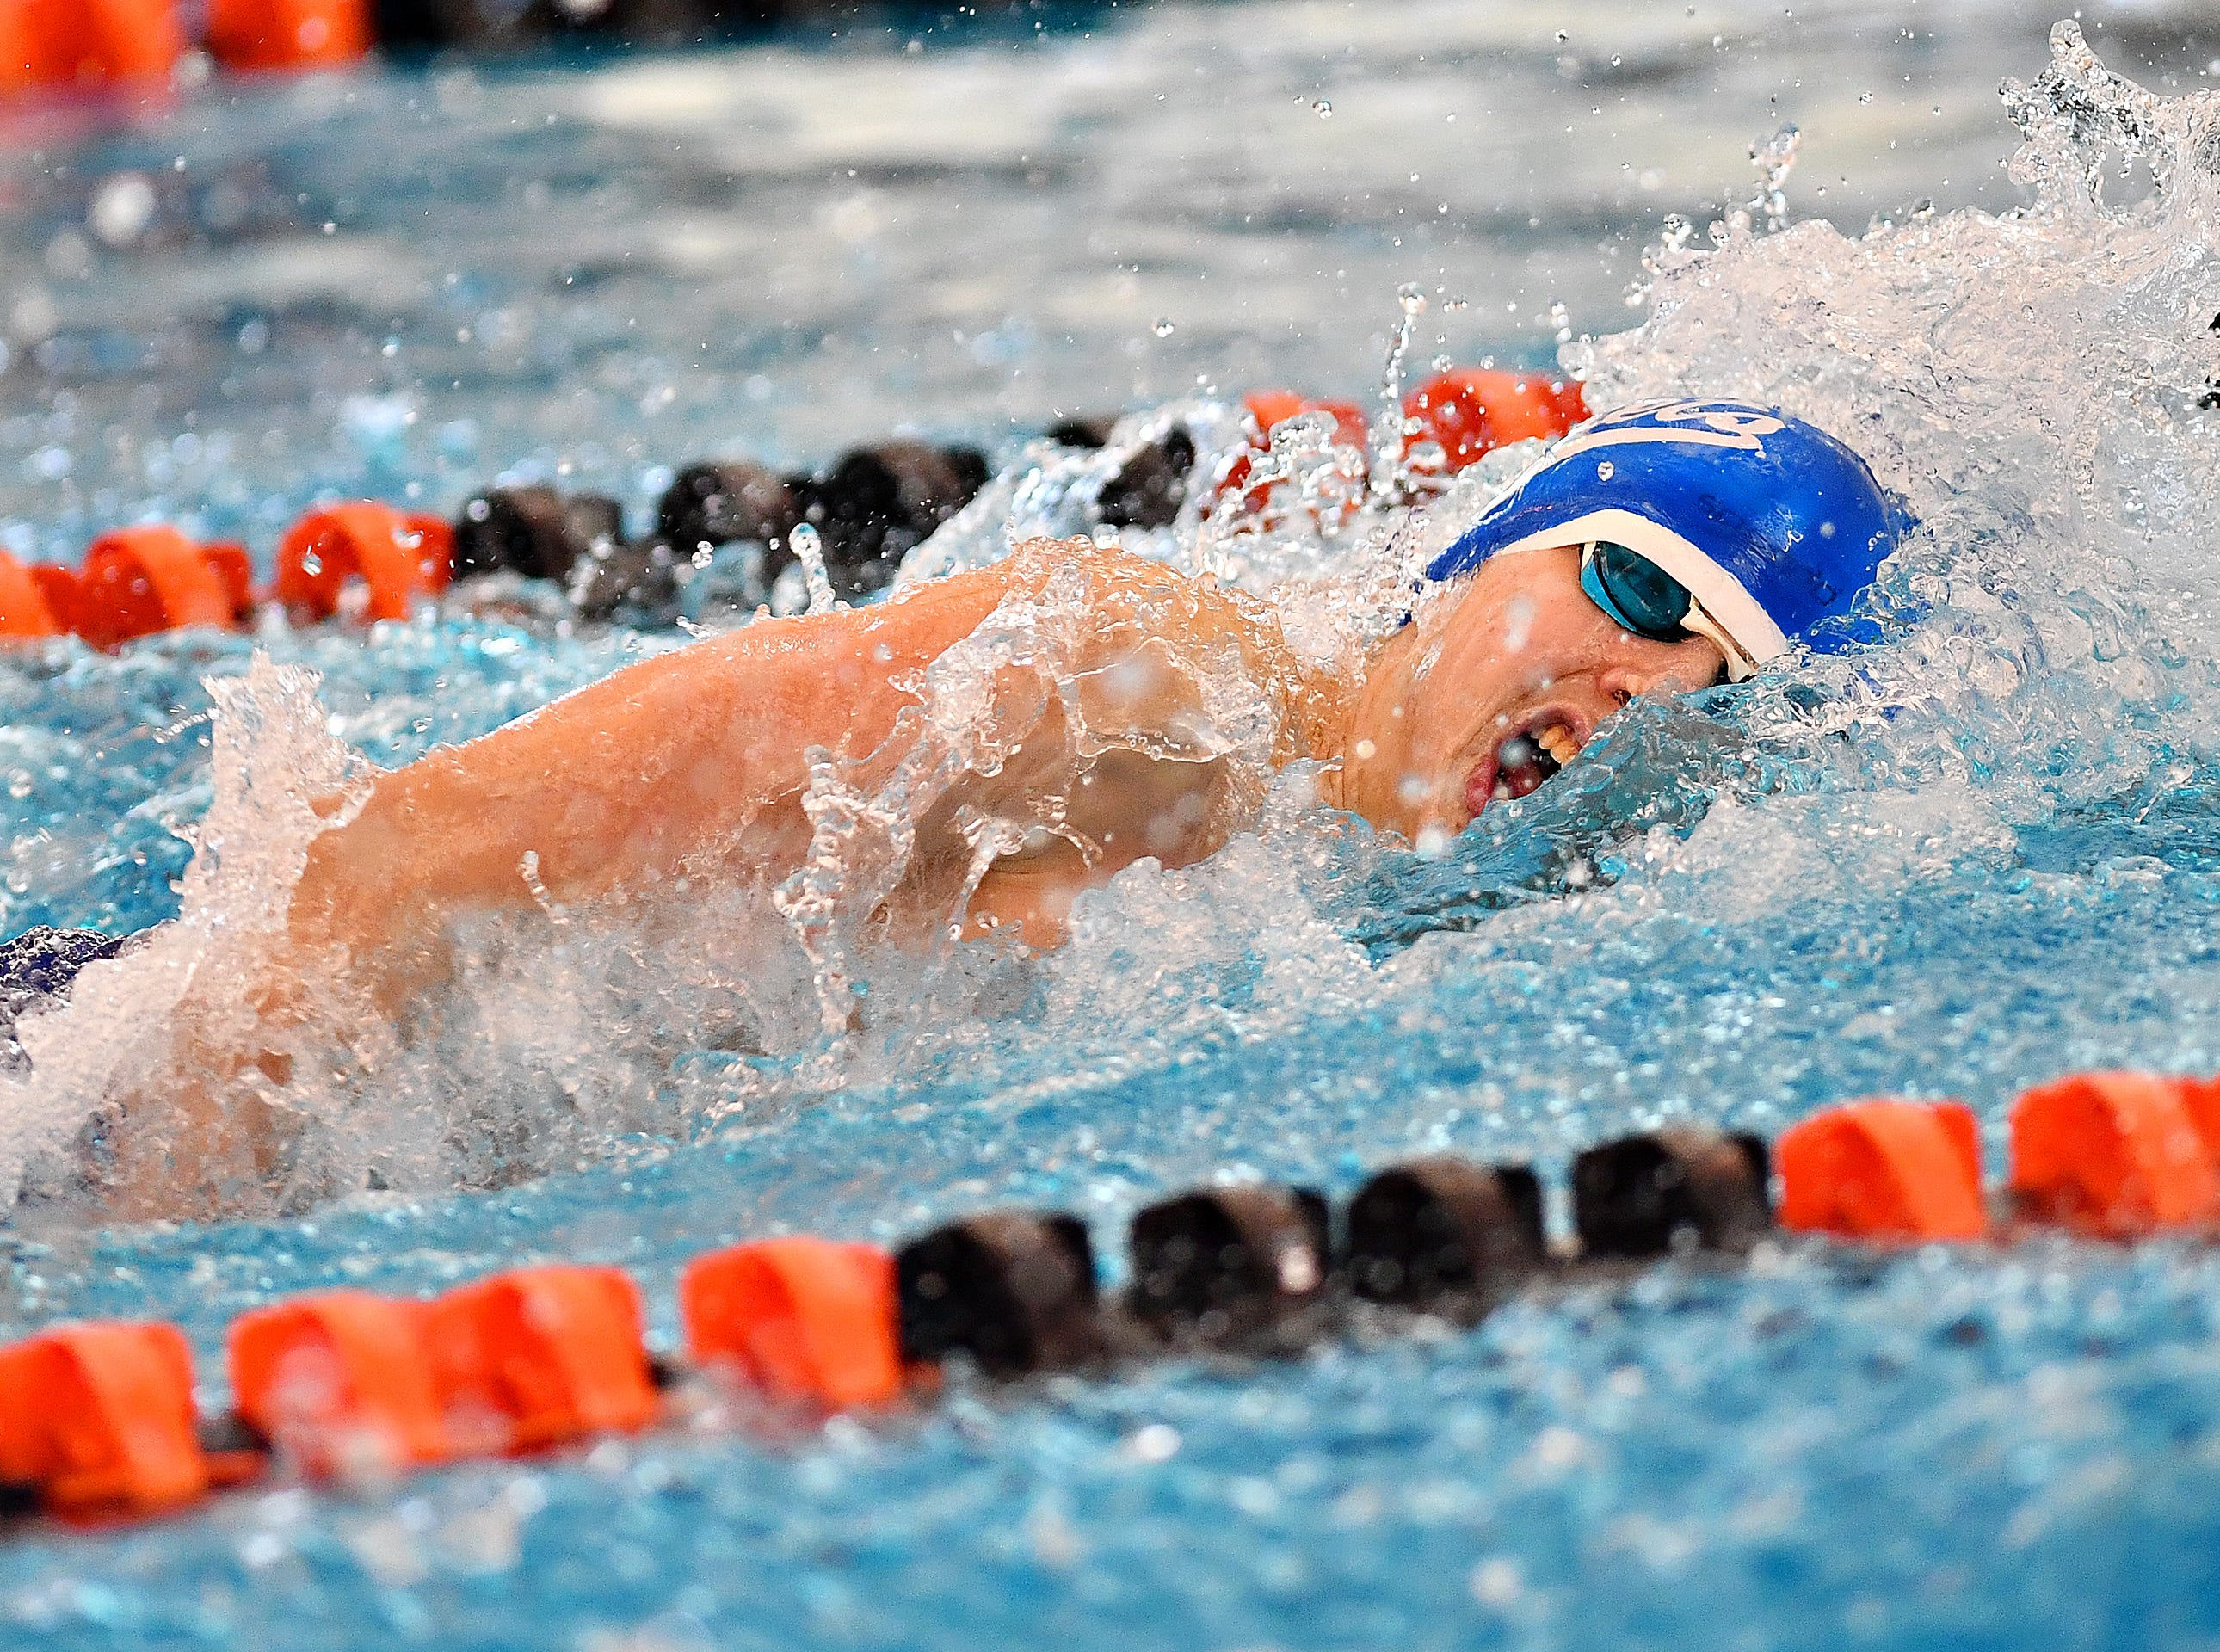 Spring Grove's Daniel K. Gordon competes in the 100 Yard Freestyle event during the York-Adams League Swimming Championship at Central York High School in Springettsbury Township, Saturday, Feb. 9, 2019. Dawn J. Sagert photo